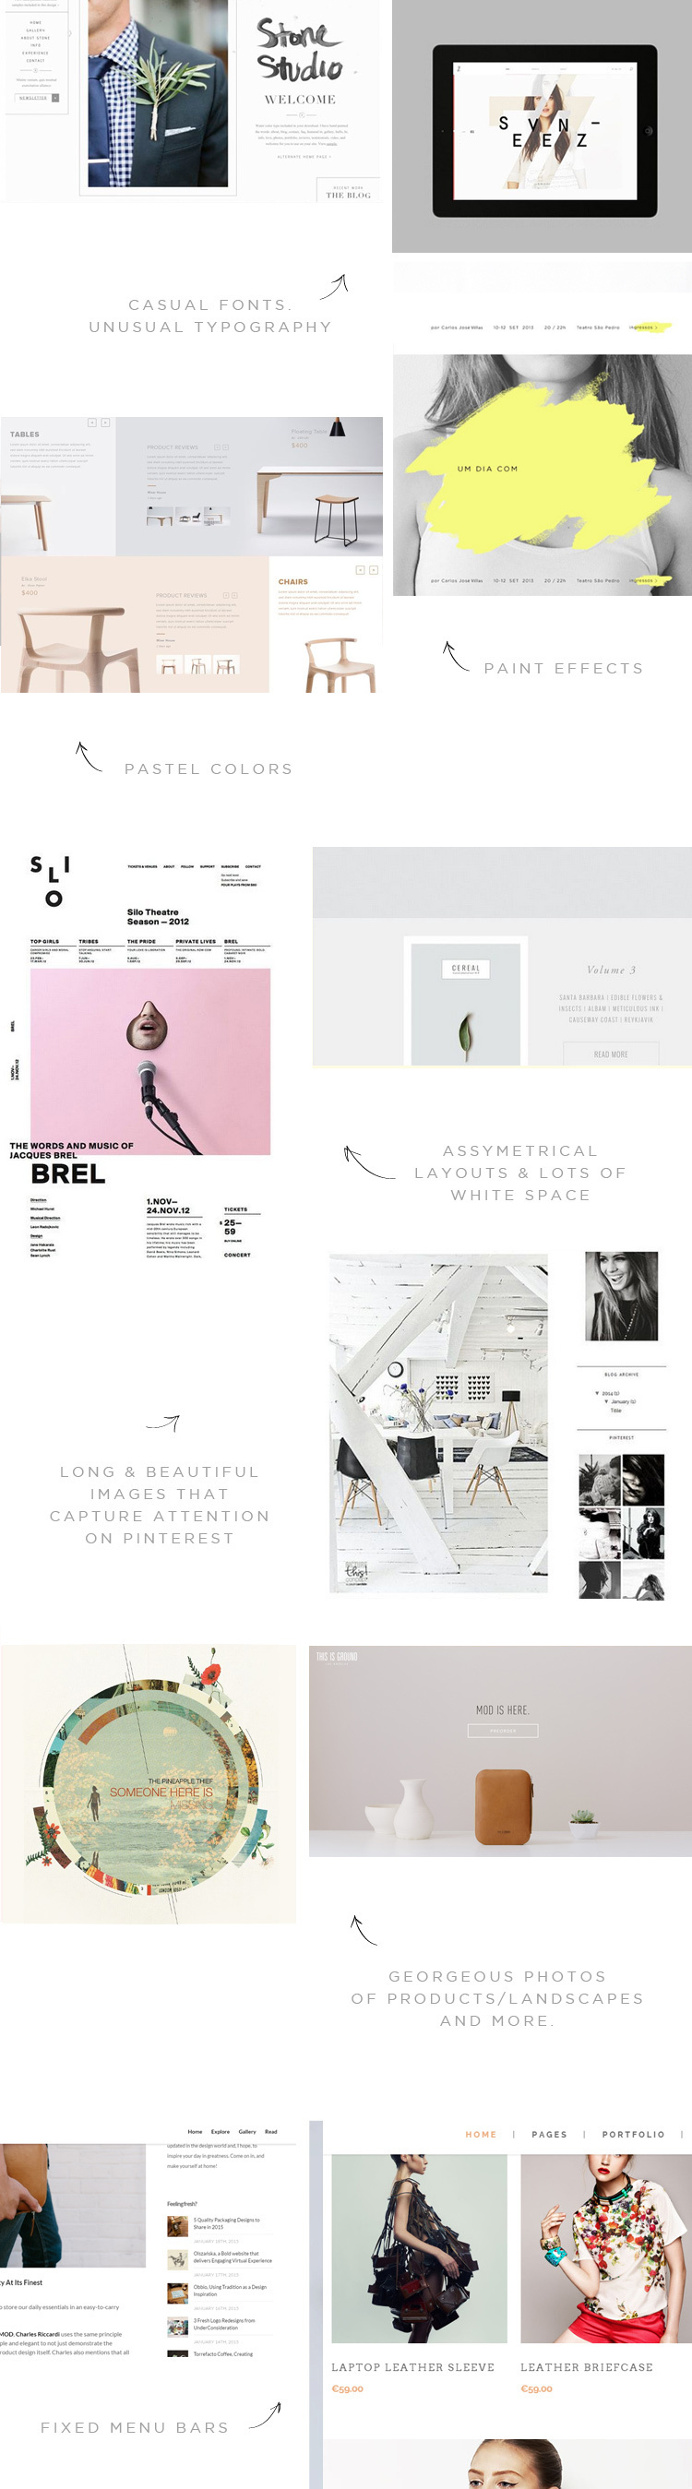 Web Design Trends & Inspiration #webdesign #webdesigner #inspire #inspiration #design